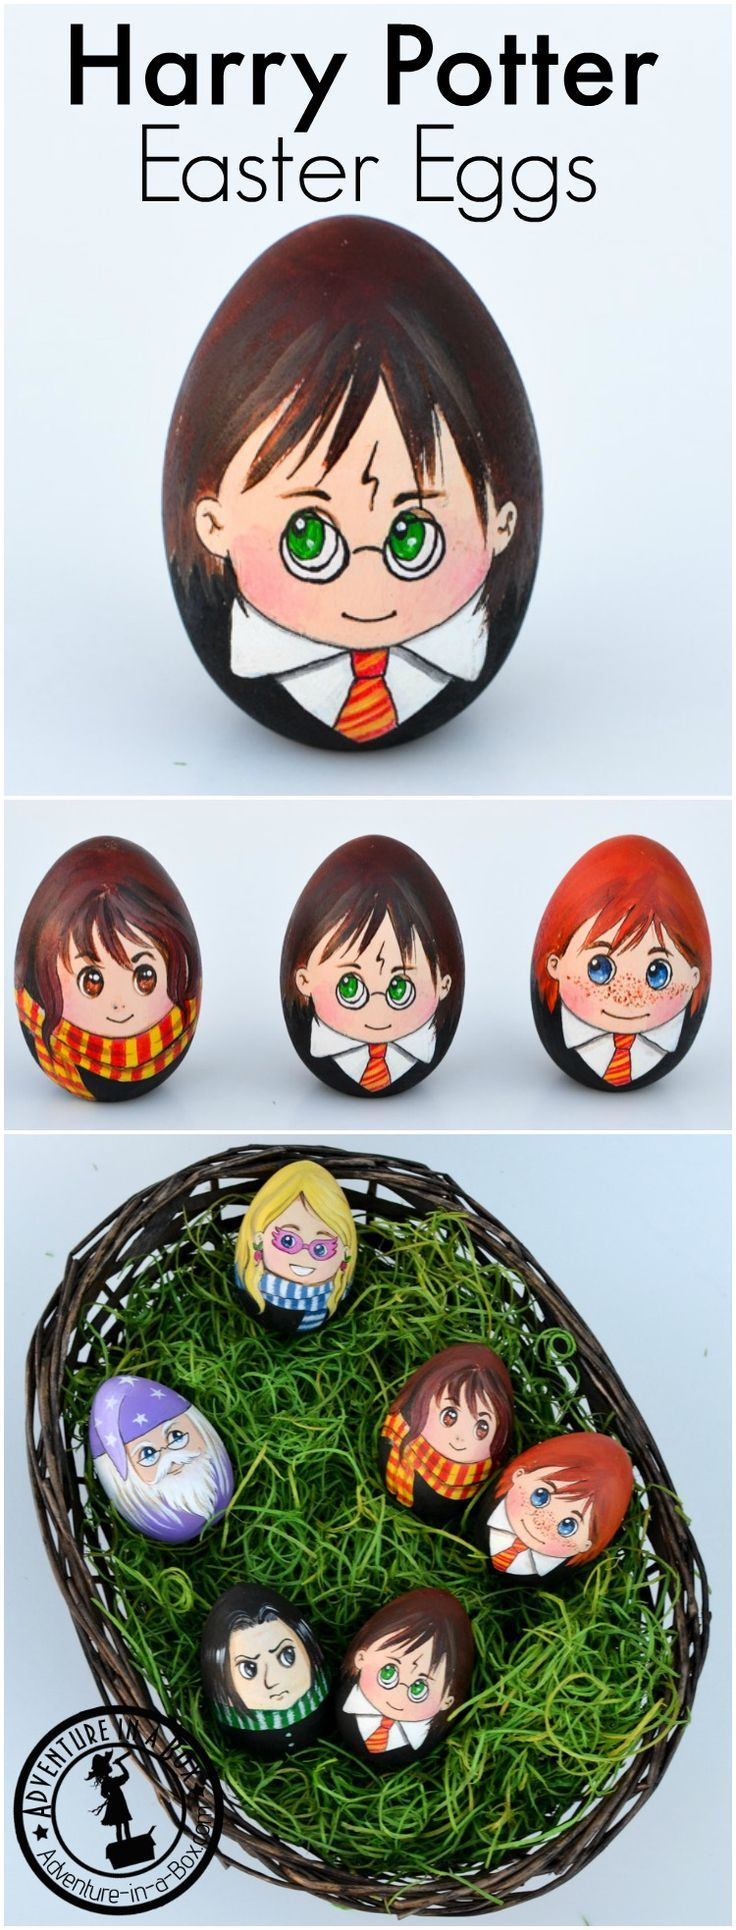 Celebrate Easter With A Set Of Harry Potter Easter Eggs A Quirky Craft For Harry Potter Fans Harry Potter Easter Eggs Harry Potter Crafts Harry Potter Cosplay